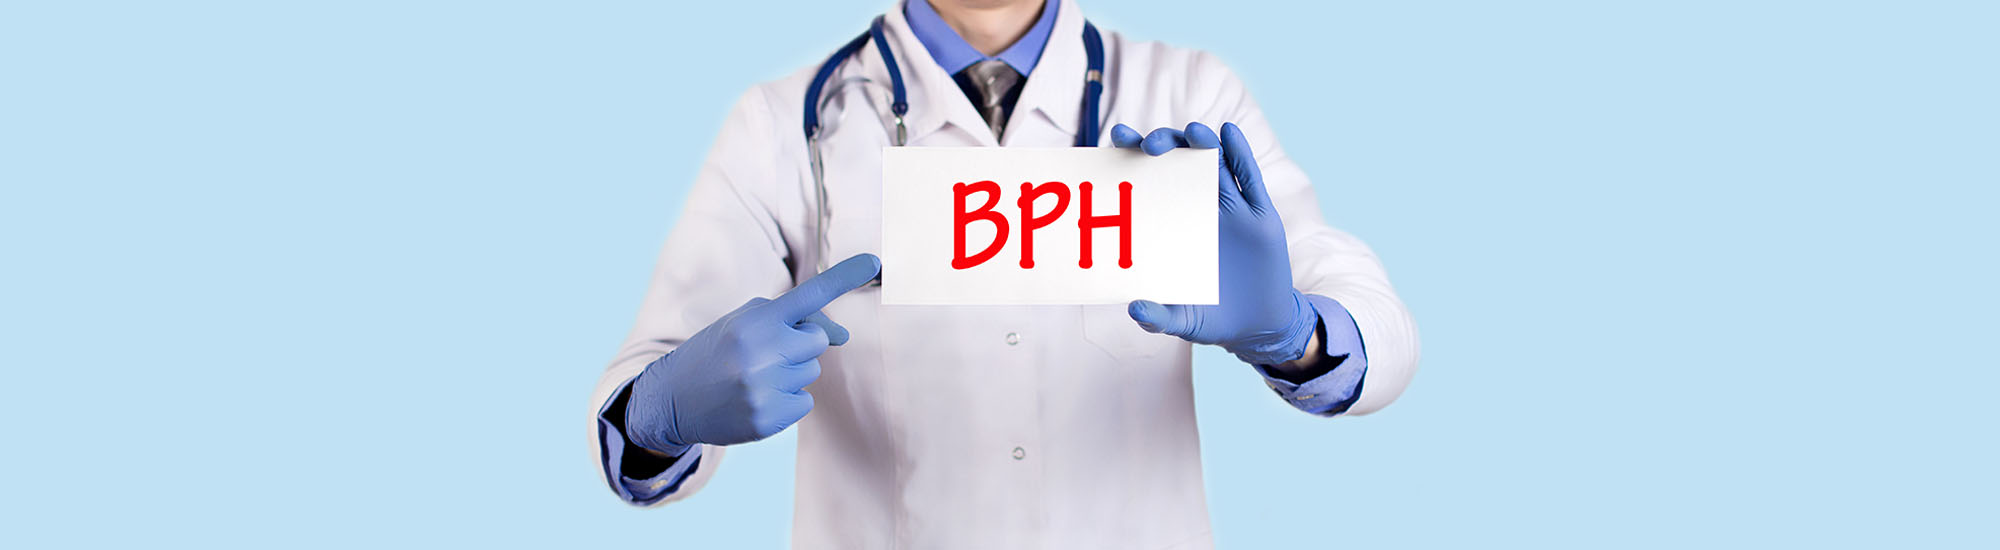 Ayurvedic treatment for What is Enlarged prostate or Benign Prostatic Hyperplasia -BPH-